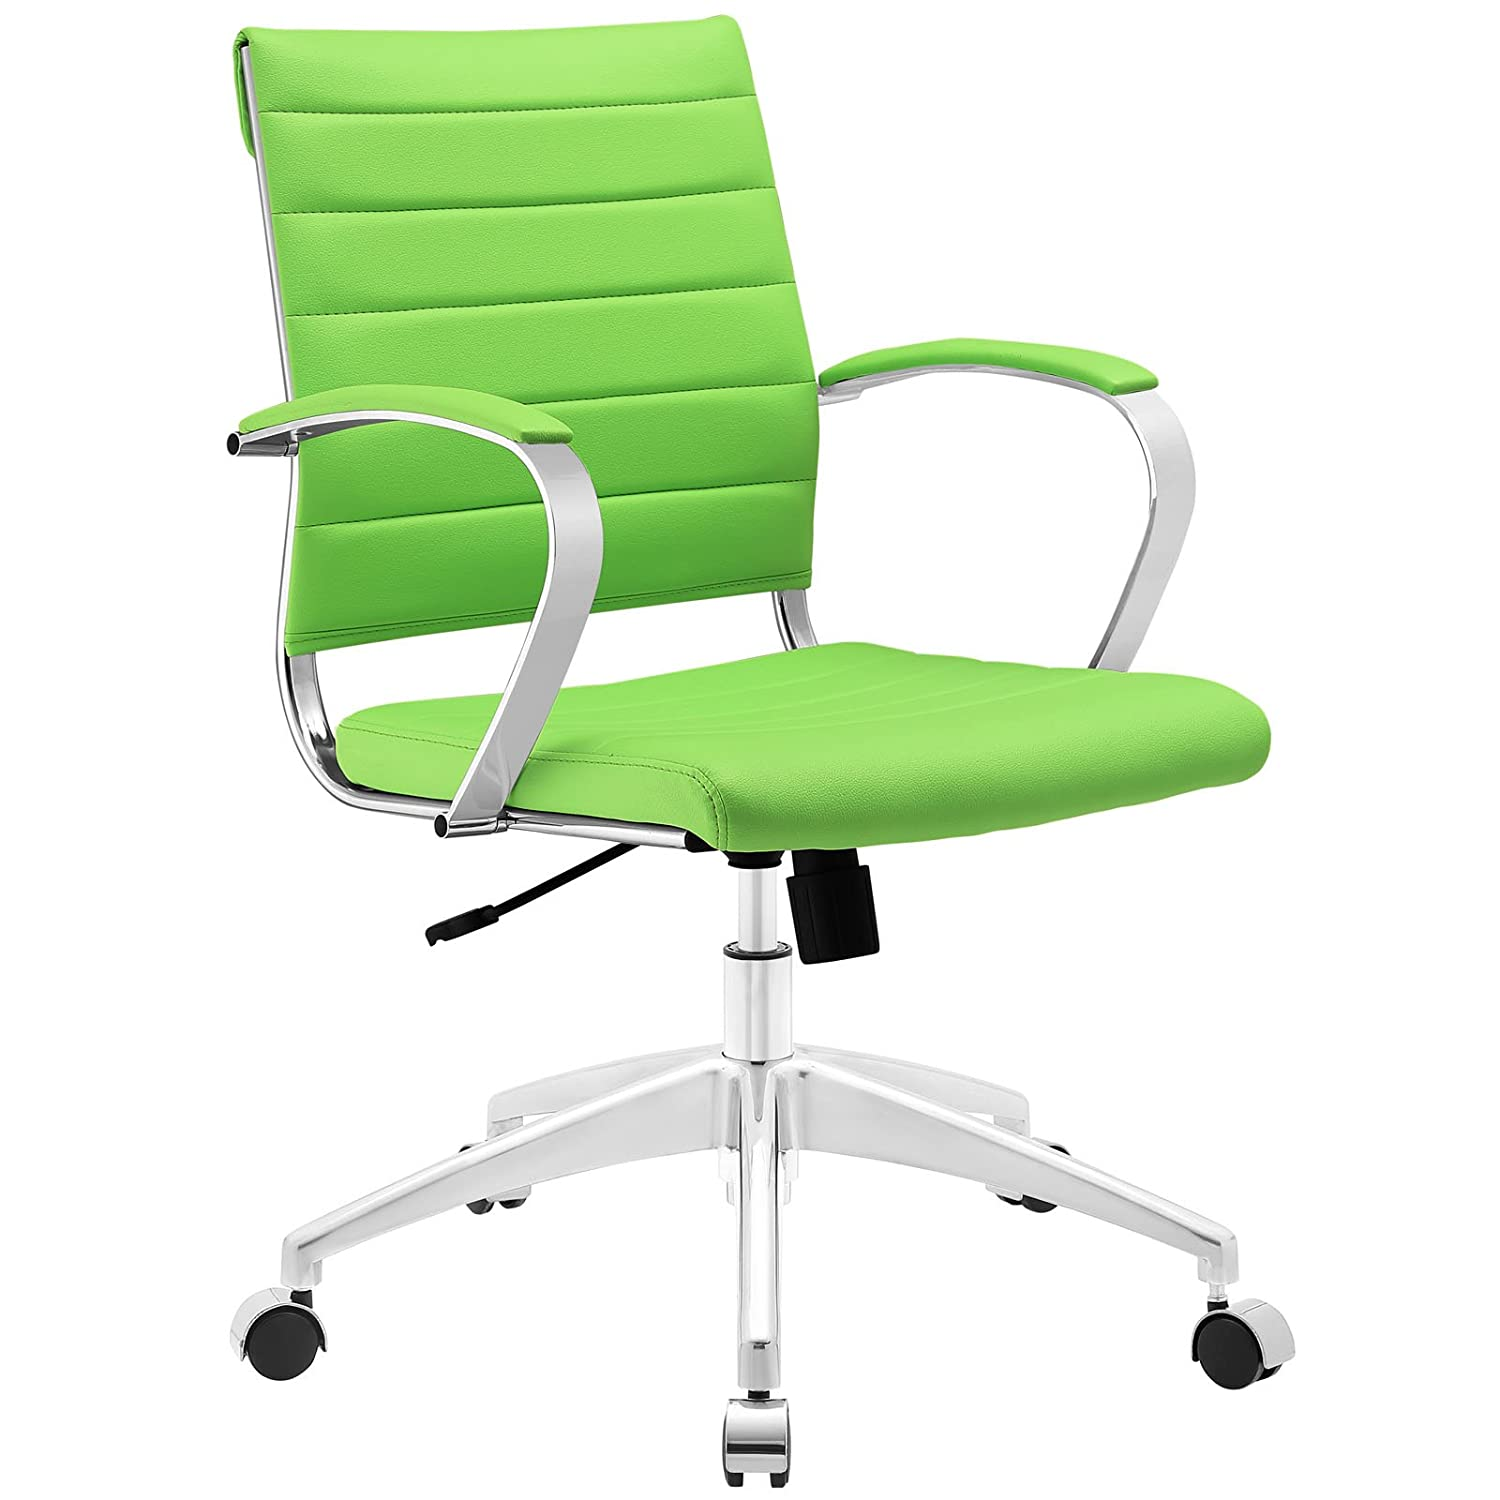 Modway Jive Ribbed Mid Back Computer Desk Swivel Office Chair In Bright Green